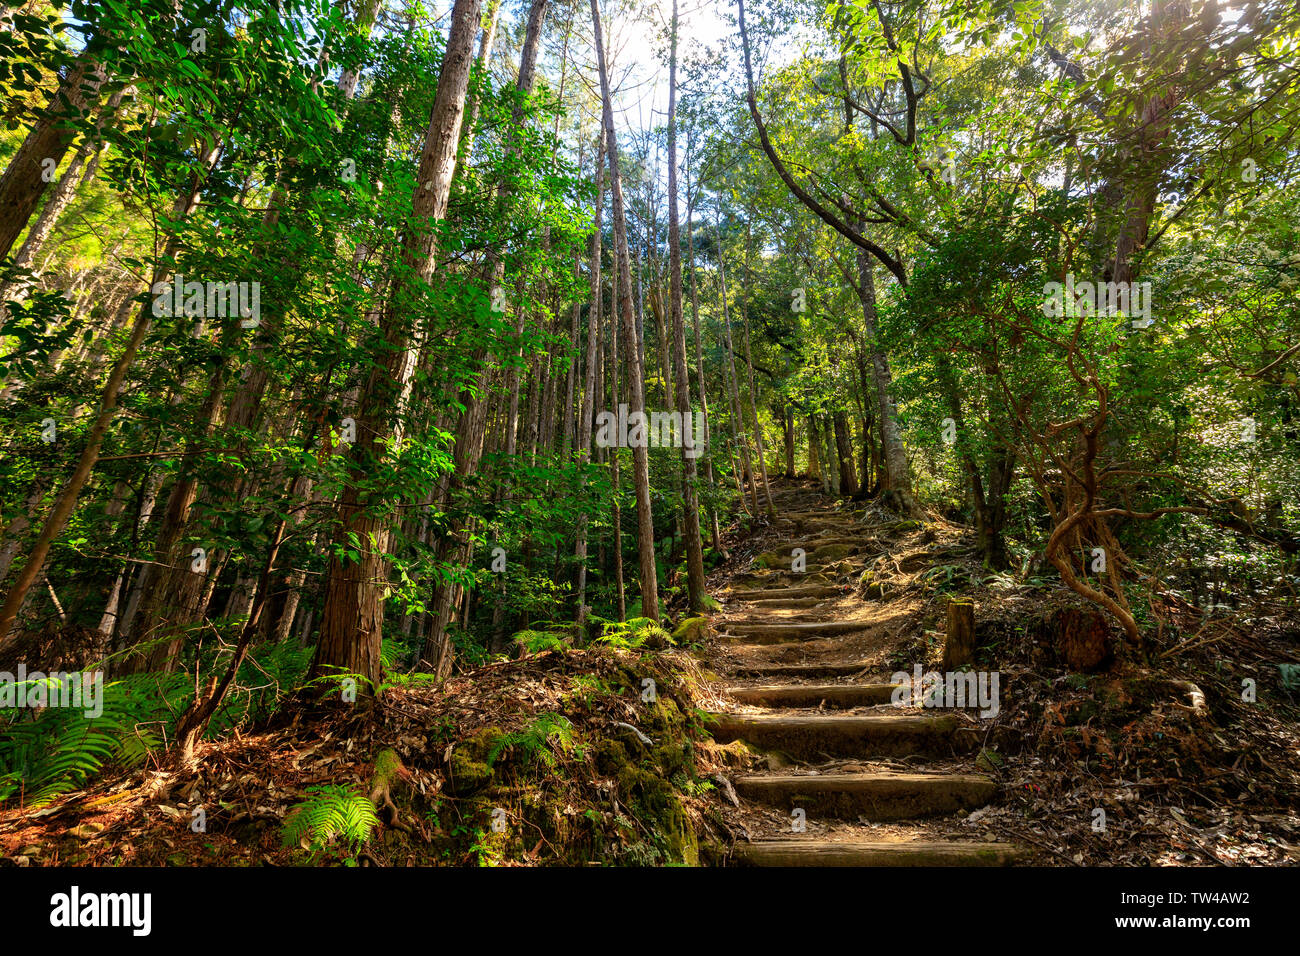 Wild cryptomeria forest of the Kumano Kodo pilgrimage trail, Japan - Stock Image